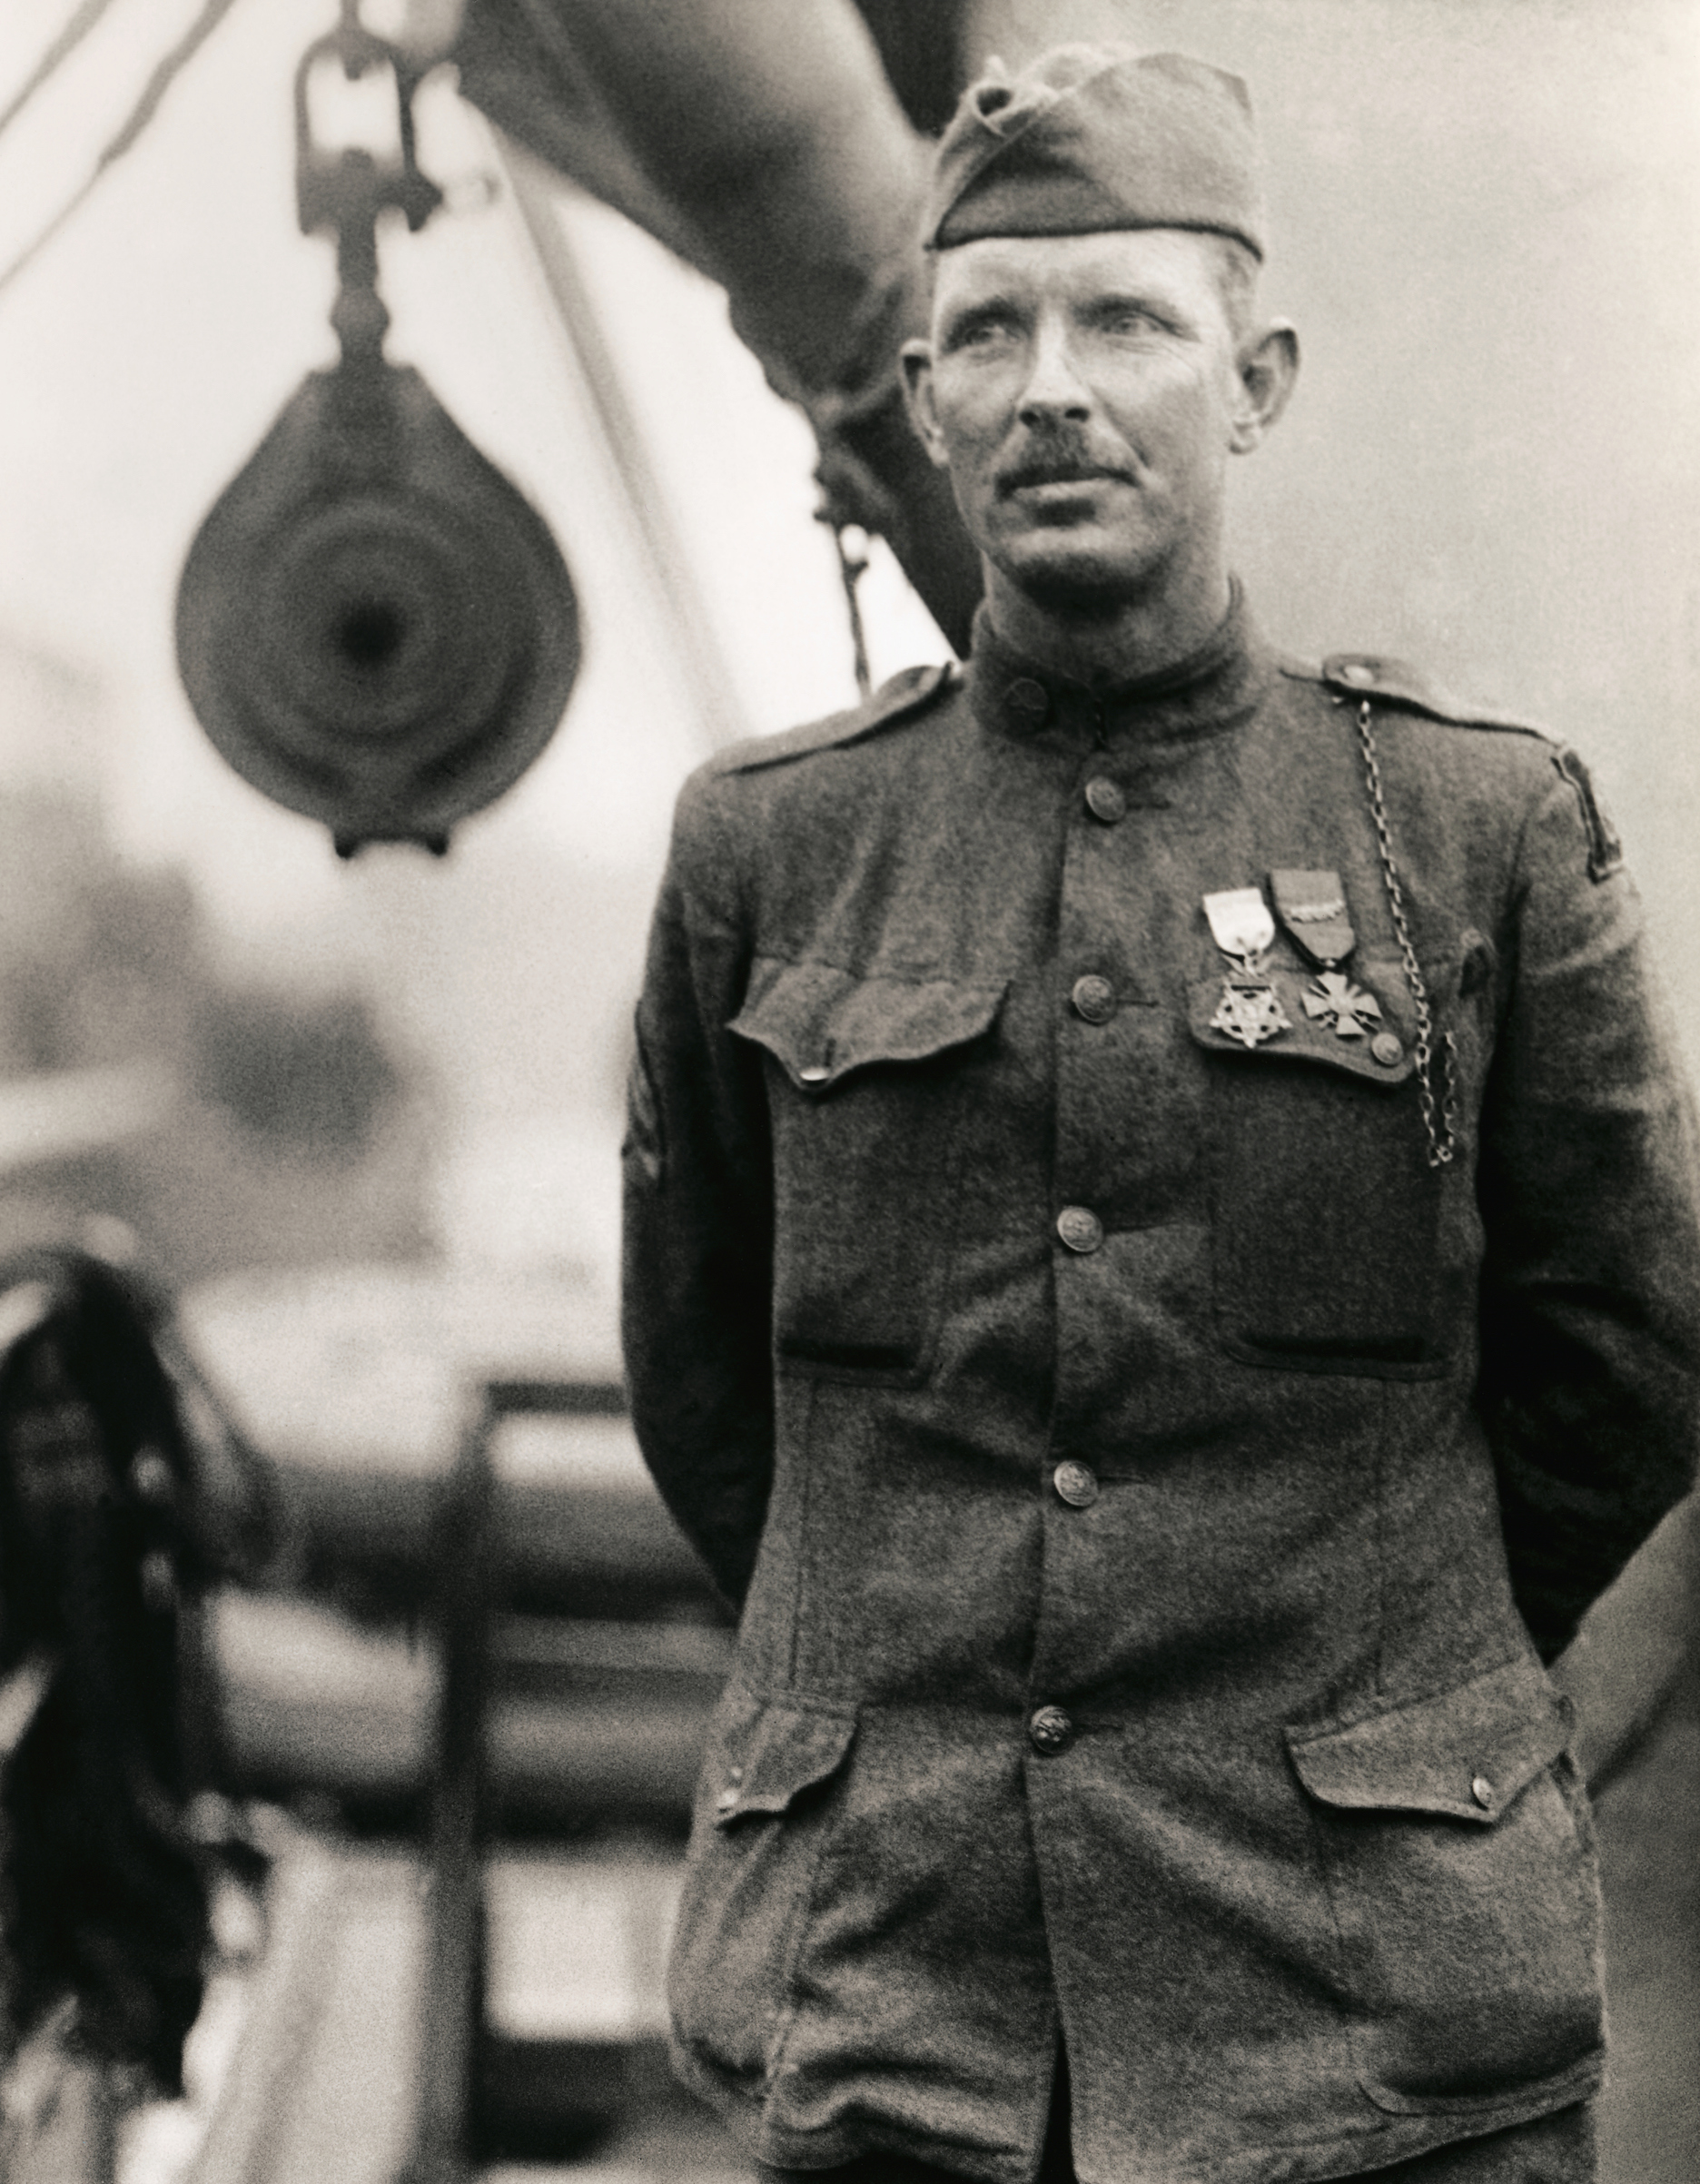 An undated photo of World War I hero Alvin C. York